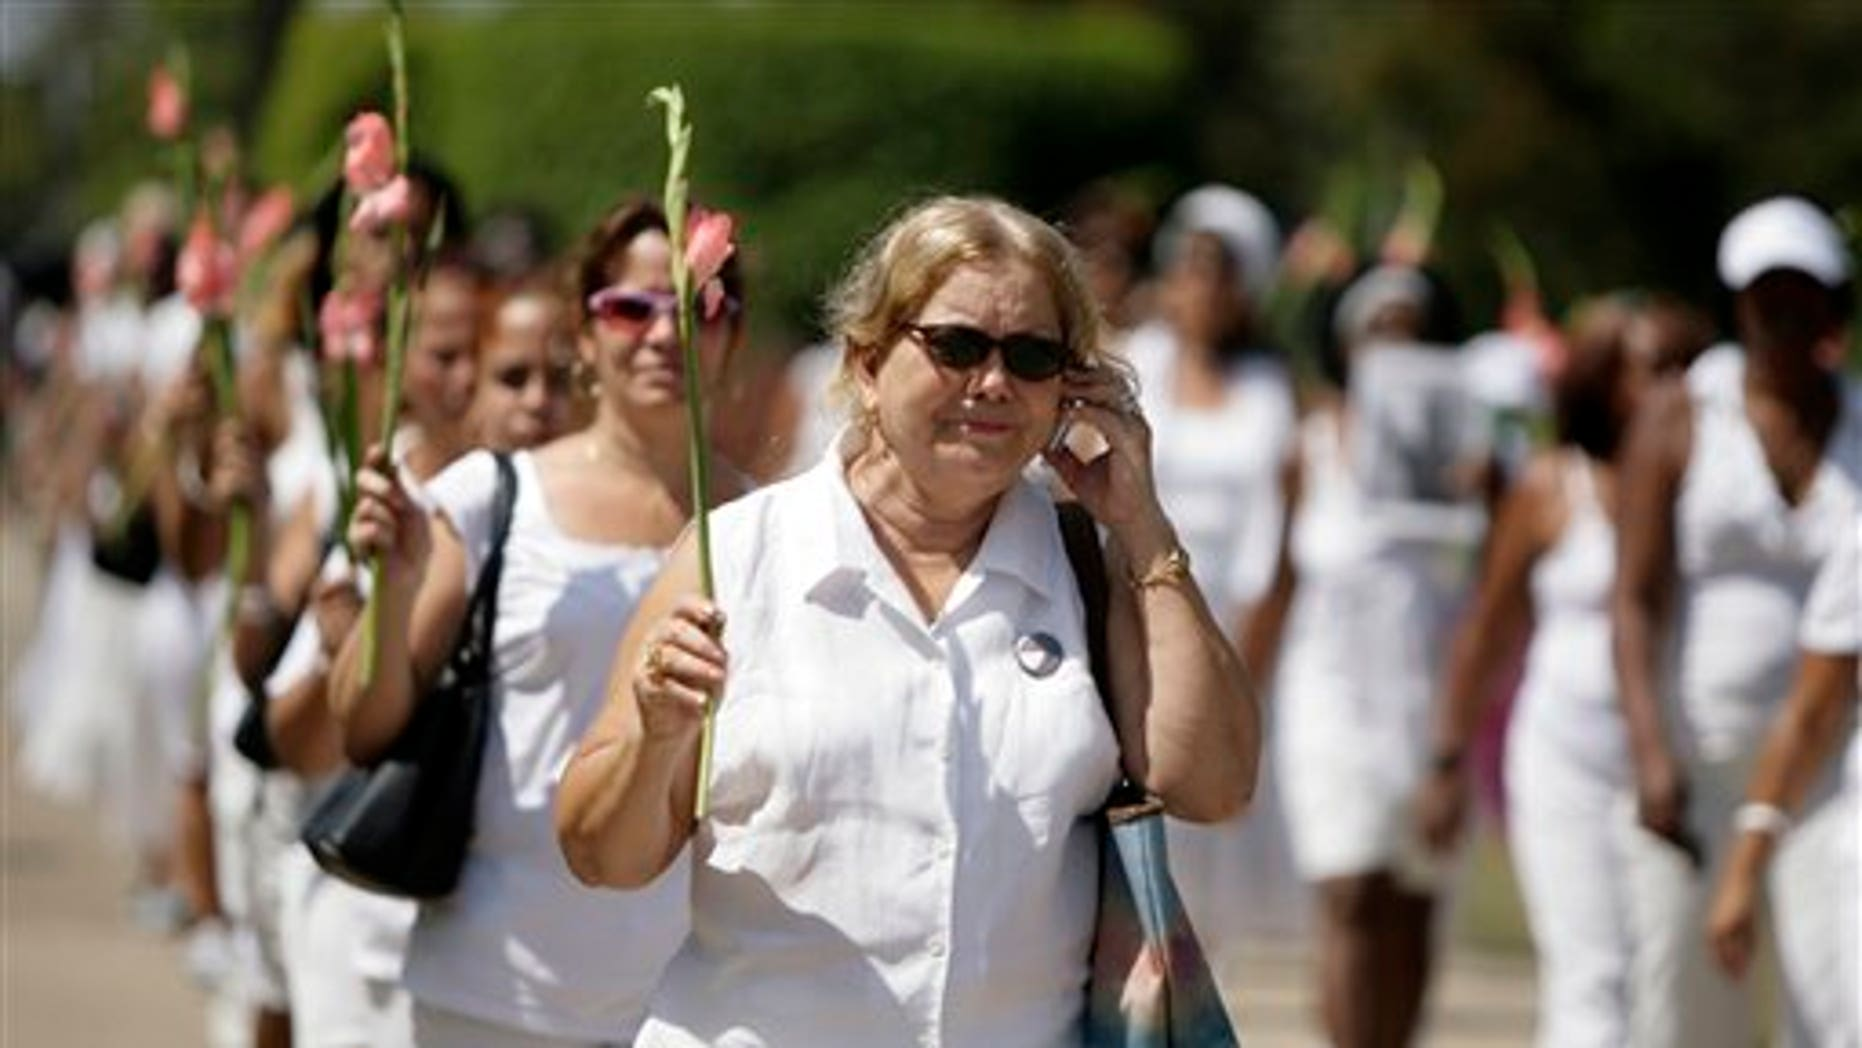 The late Laura Pollan (above, speaking on a cell phone) was leader and a founder of the dissident group Ladies in White, which held weekly marches in Havana to call for the release of political prisoners. Ladies in White included many mothers, wives and daughters of political prisoners.